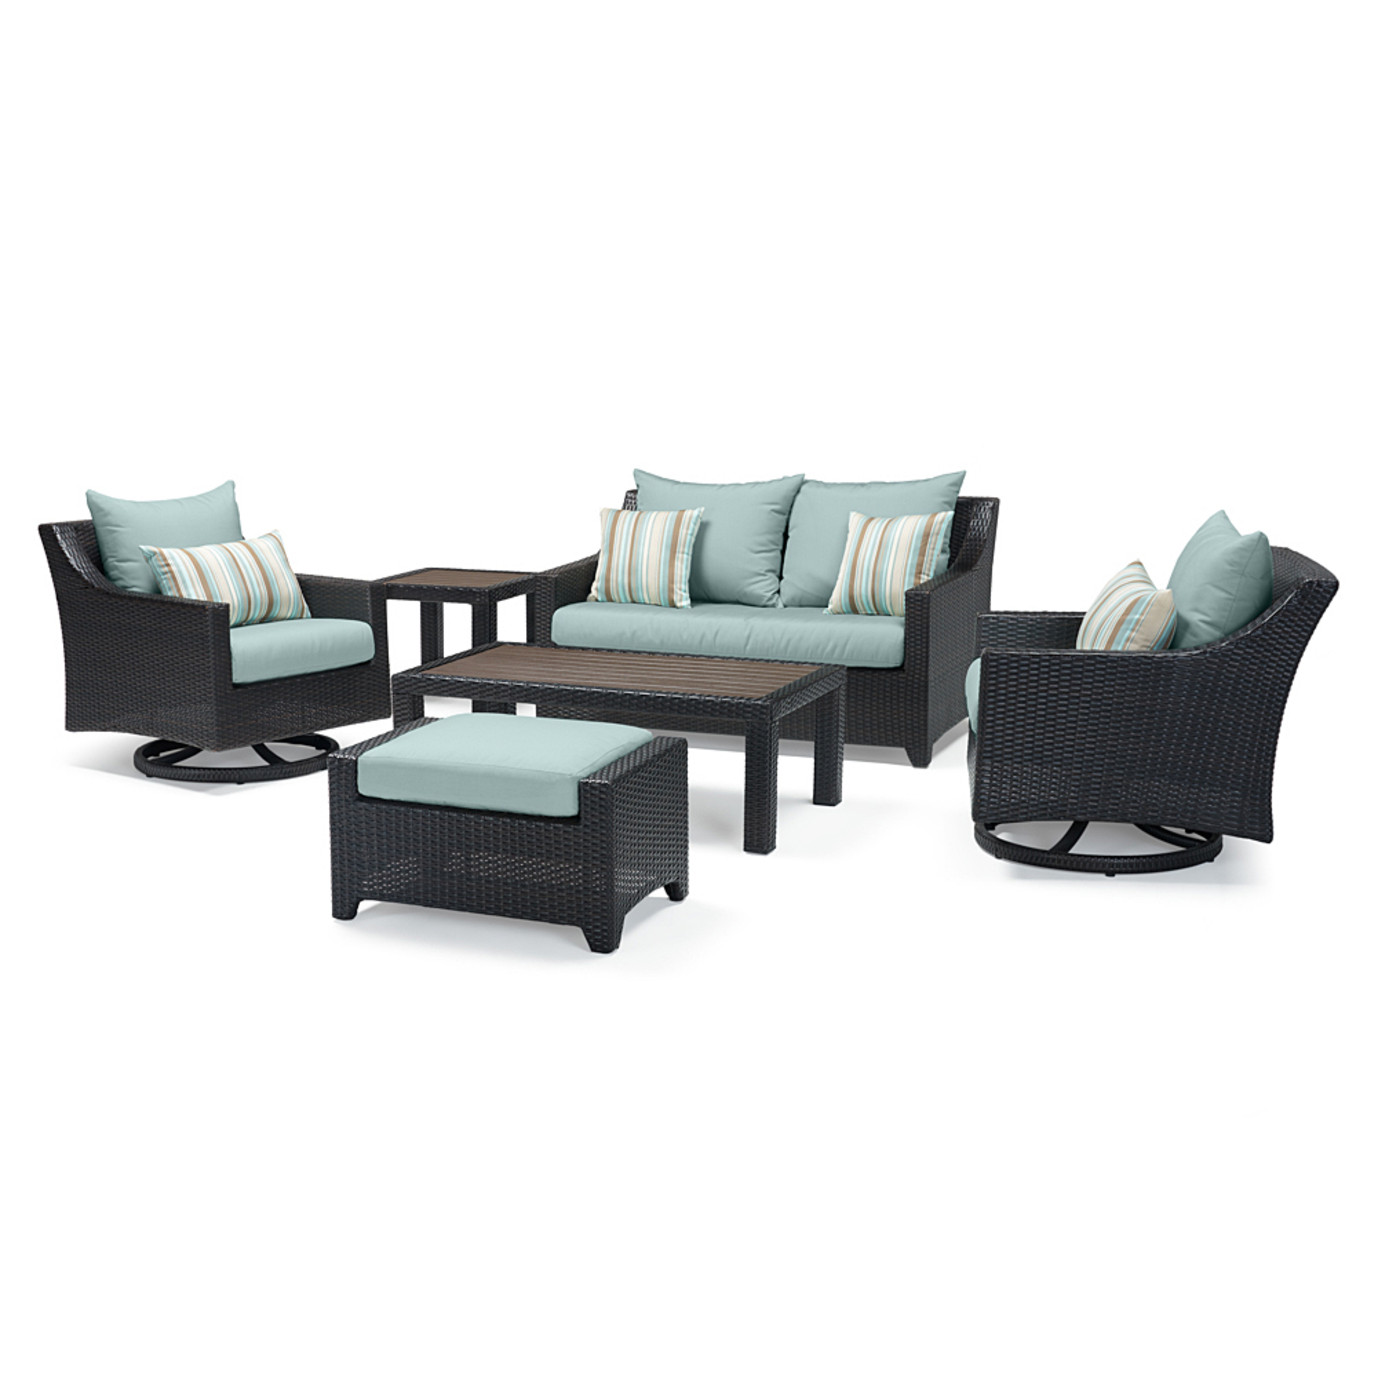 Deco Deluxe 6 Piece Love & Motion Club Seating Set - Bliss Blue